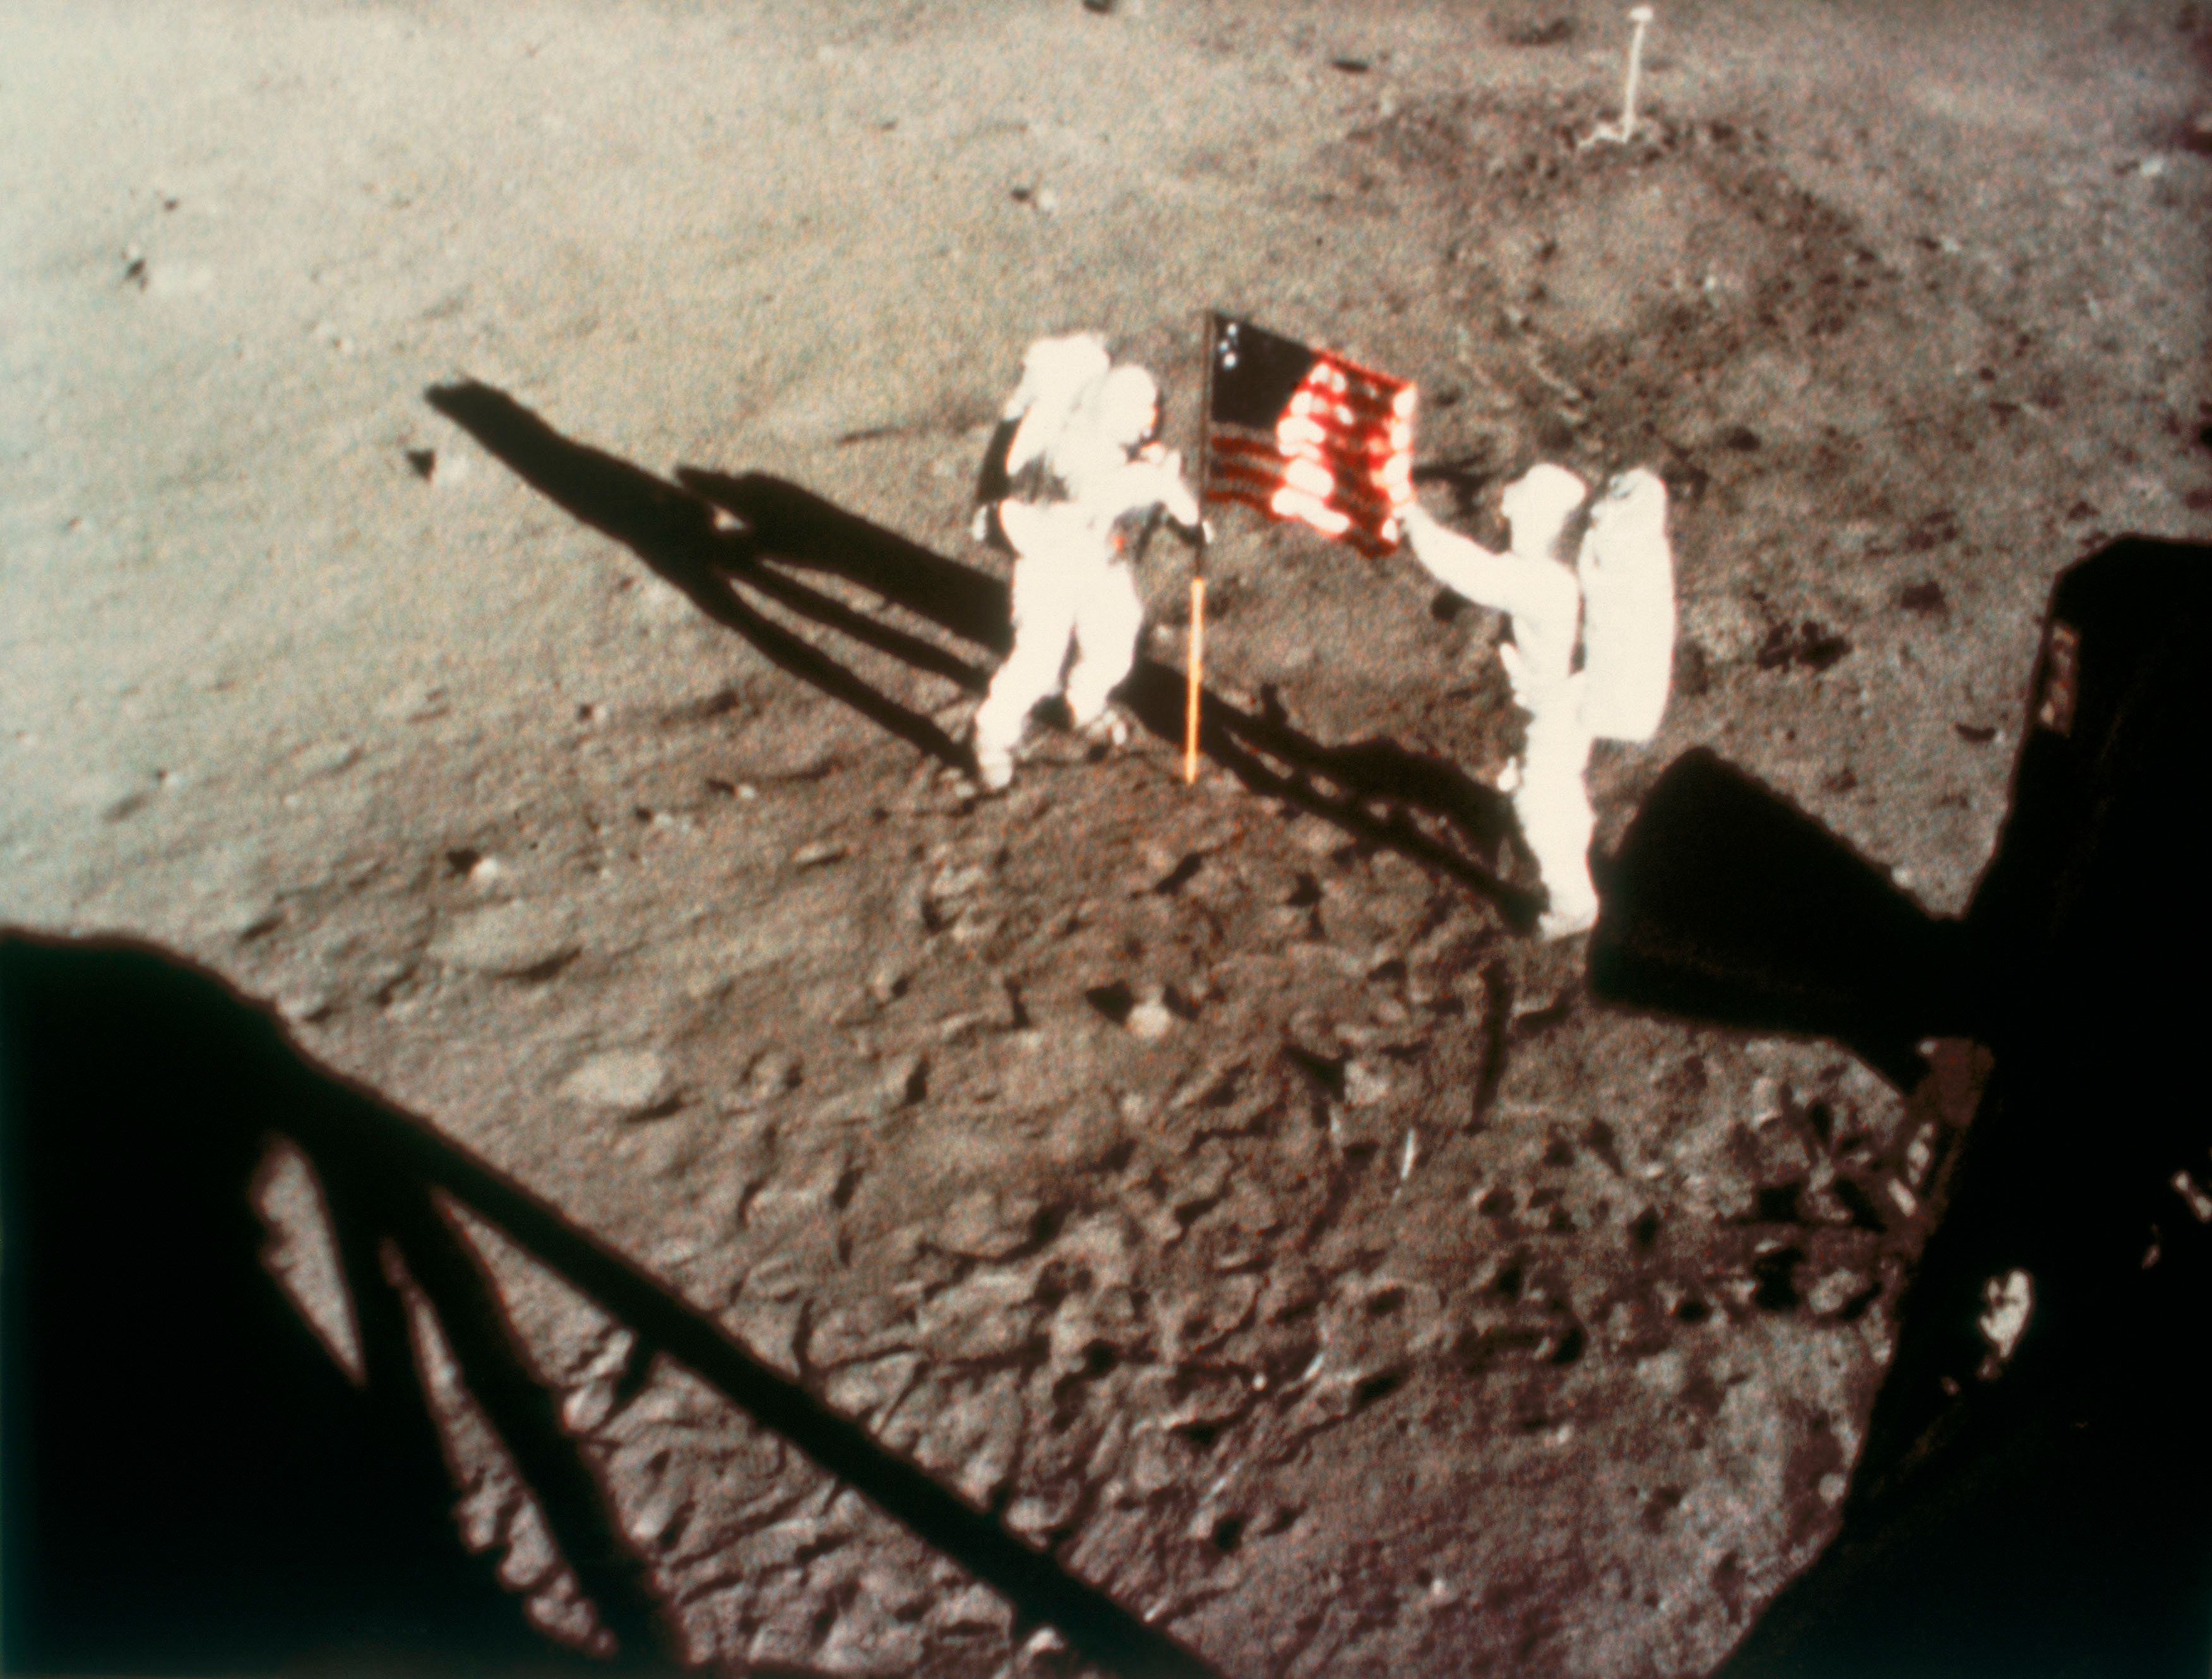 UNITED STATES - MAY 02:  Apollo 11, the first manned lunar landing mission, was launched on 16 July 1969. Four days later, at 10.56.15pm EDT on 20 July 1969, astronauts Neil Armstrong and Edwin �Buzz� Aldrin climbed down the steps of the Lunar Module to become the first humans to set foot on another planetary body. �One small step for man, one giant leap for mankind�, were Armstrong�s famous words as he reached the surface. The third member of the crew, Michael Collins, remained in lunar orbit.  (Photo by SSPL/Getty Images)